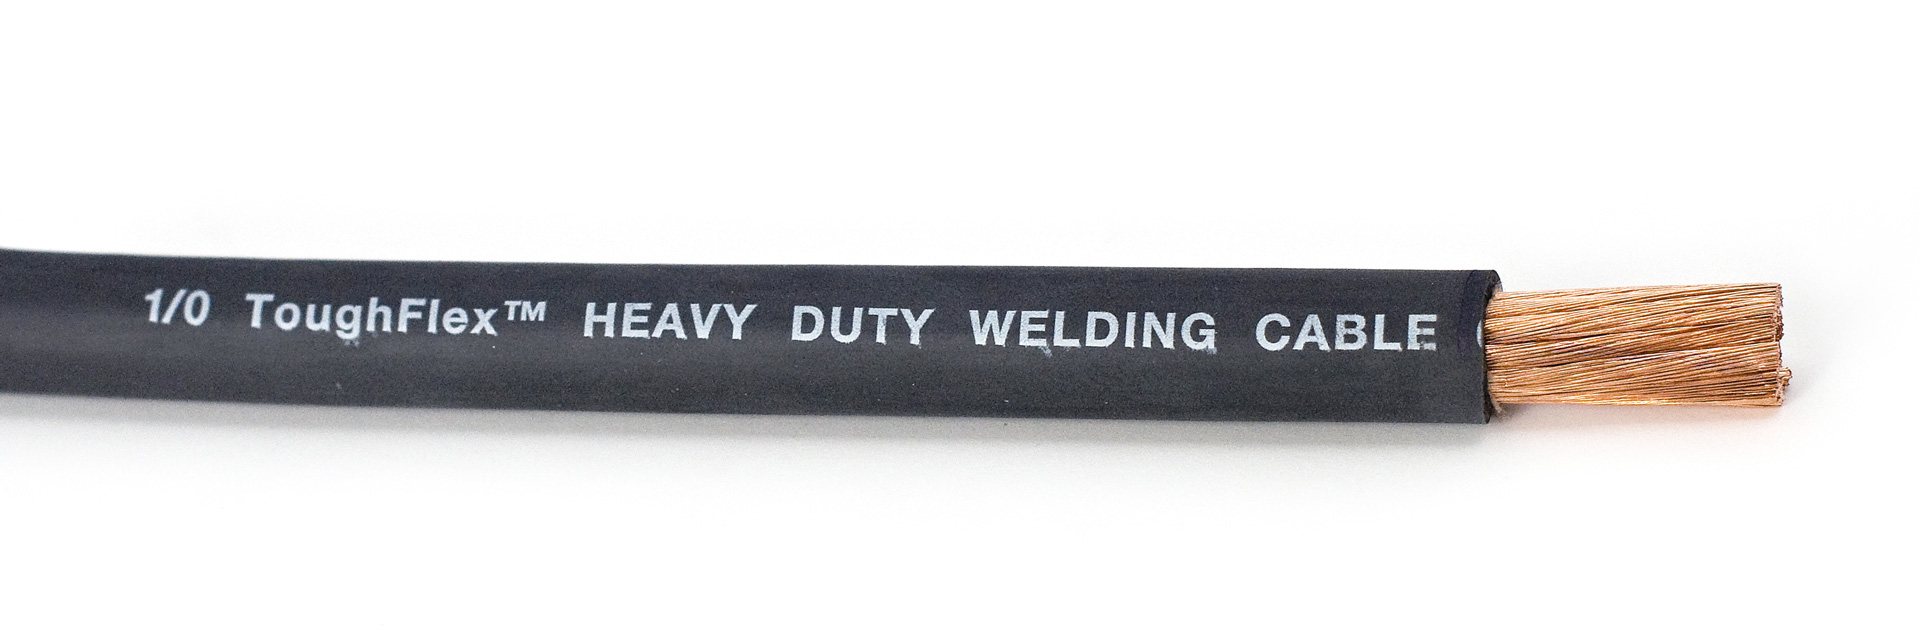 Kalas Launches Mcm Cable For Sgr Welding Products Kalas Wire